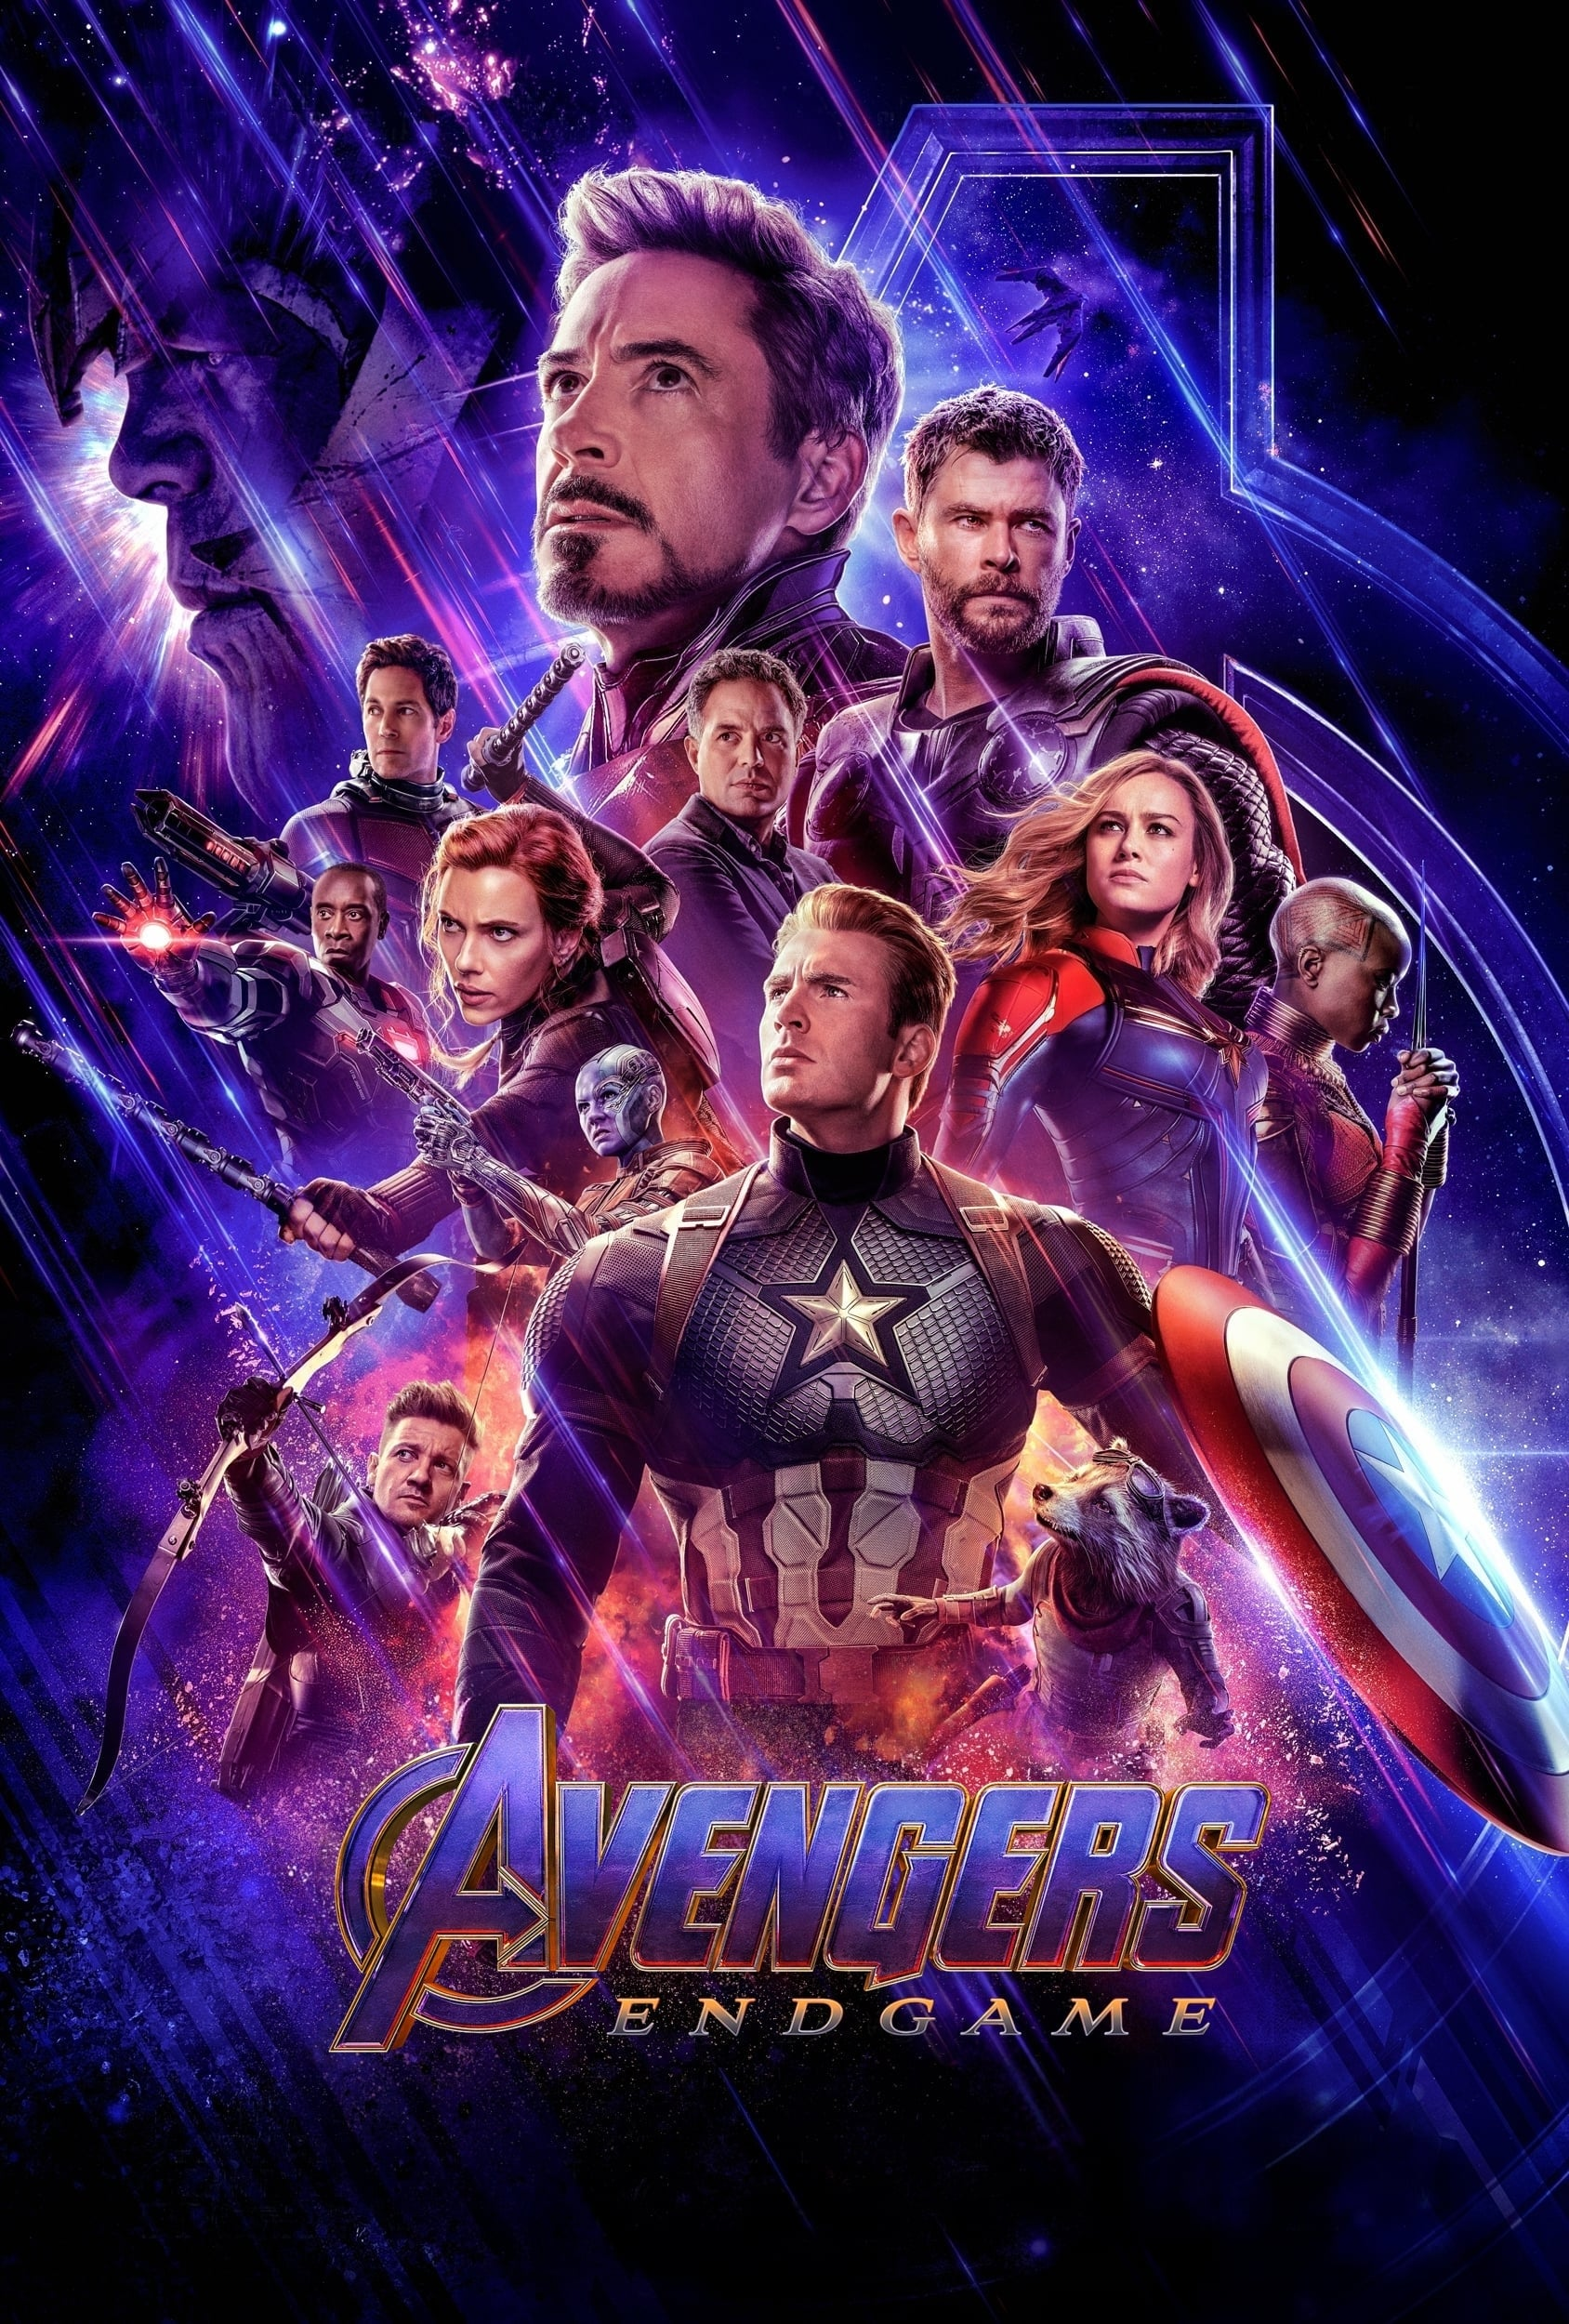 Avengers: Endgame (2019) Official Trailer #1